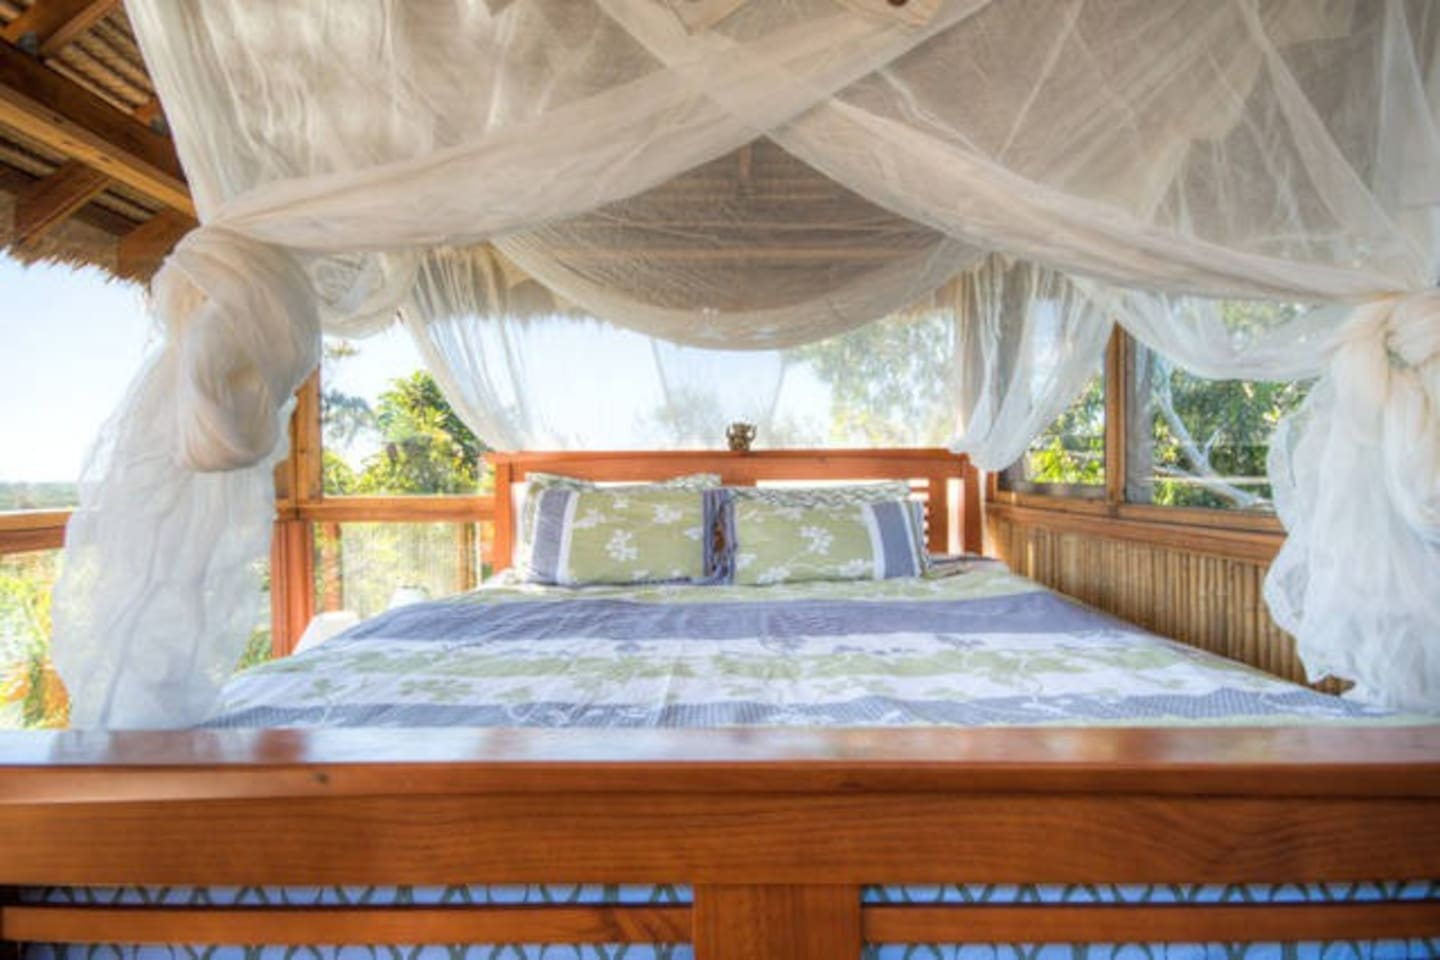 The King bed in the tree tops